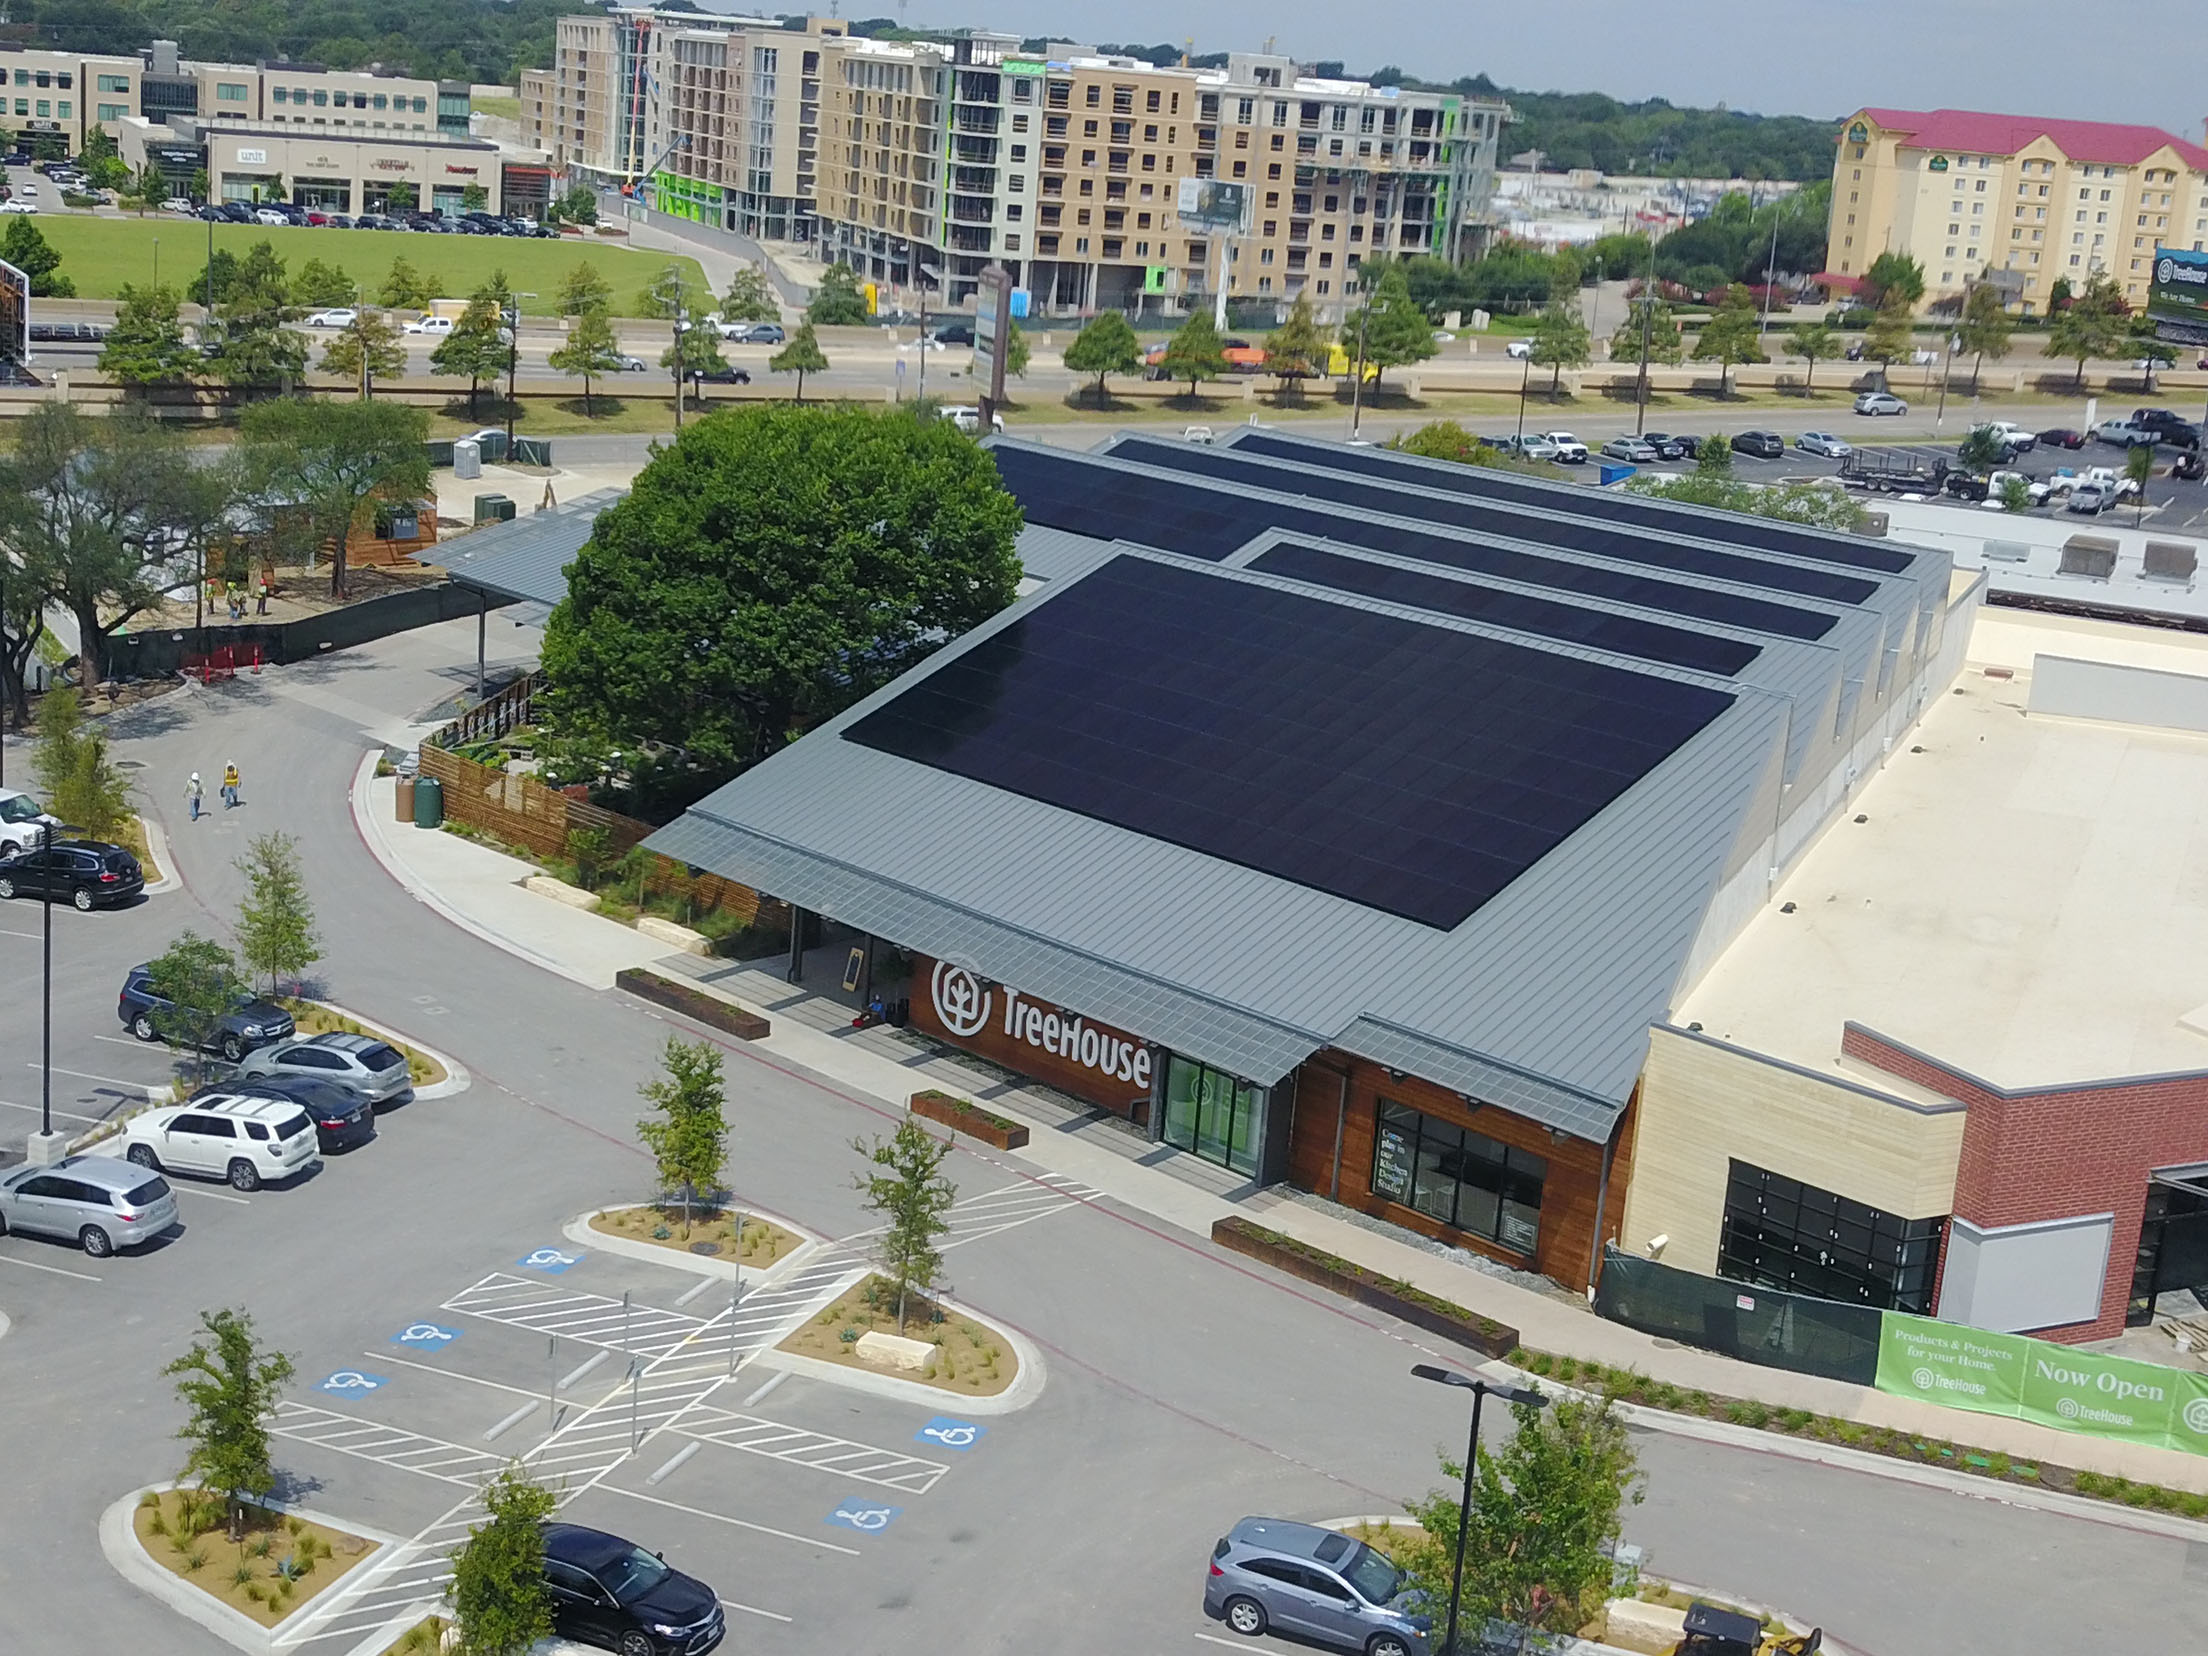 Commercial - Turnkey commercial solar power system designed, installed and supported by the most experienced team in Central Texas.